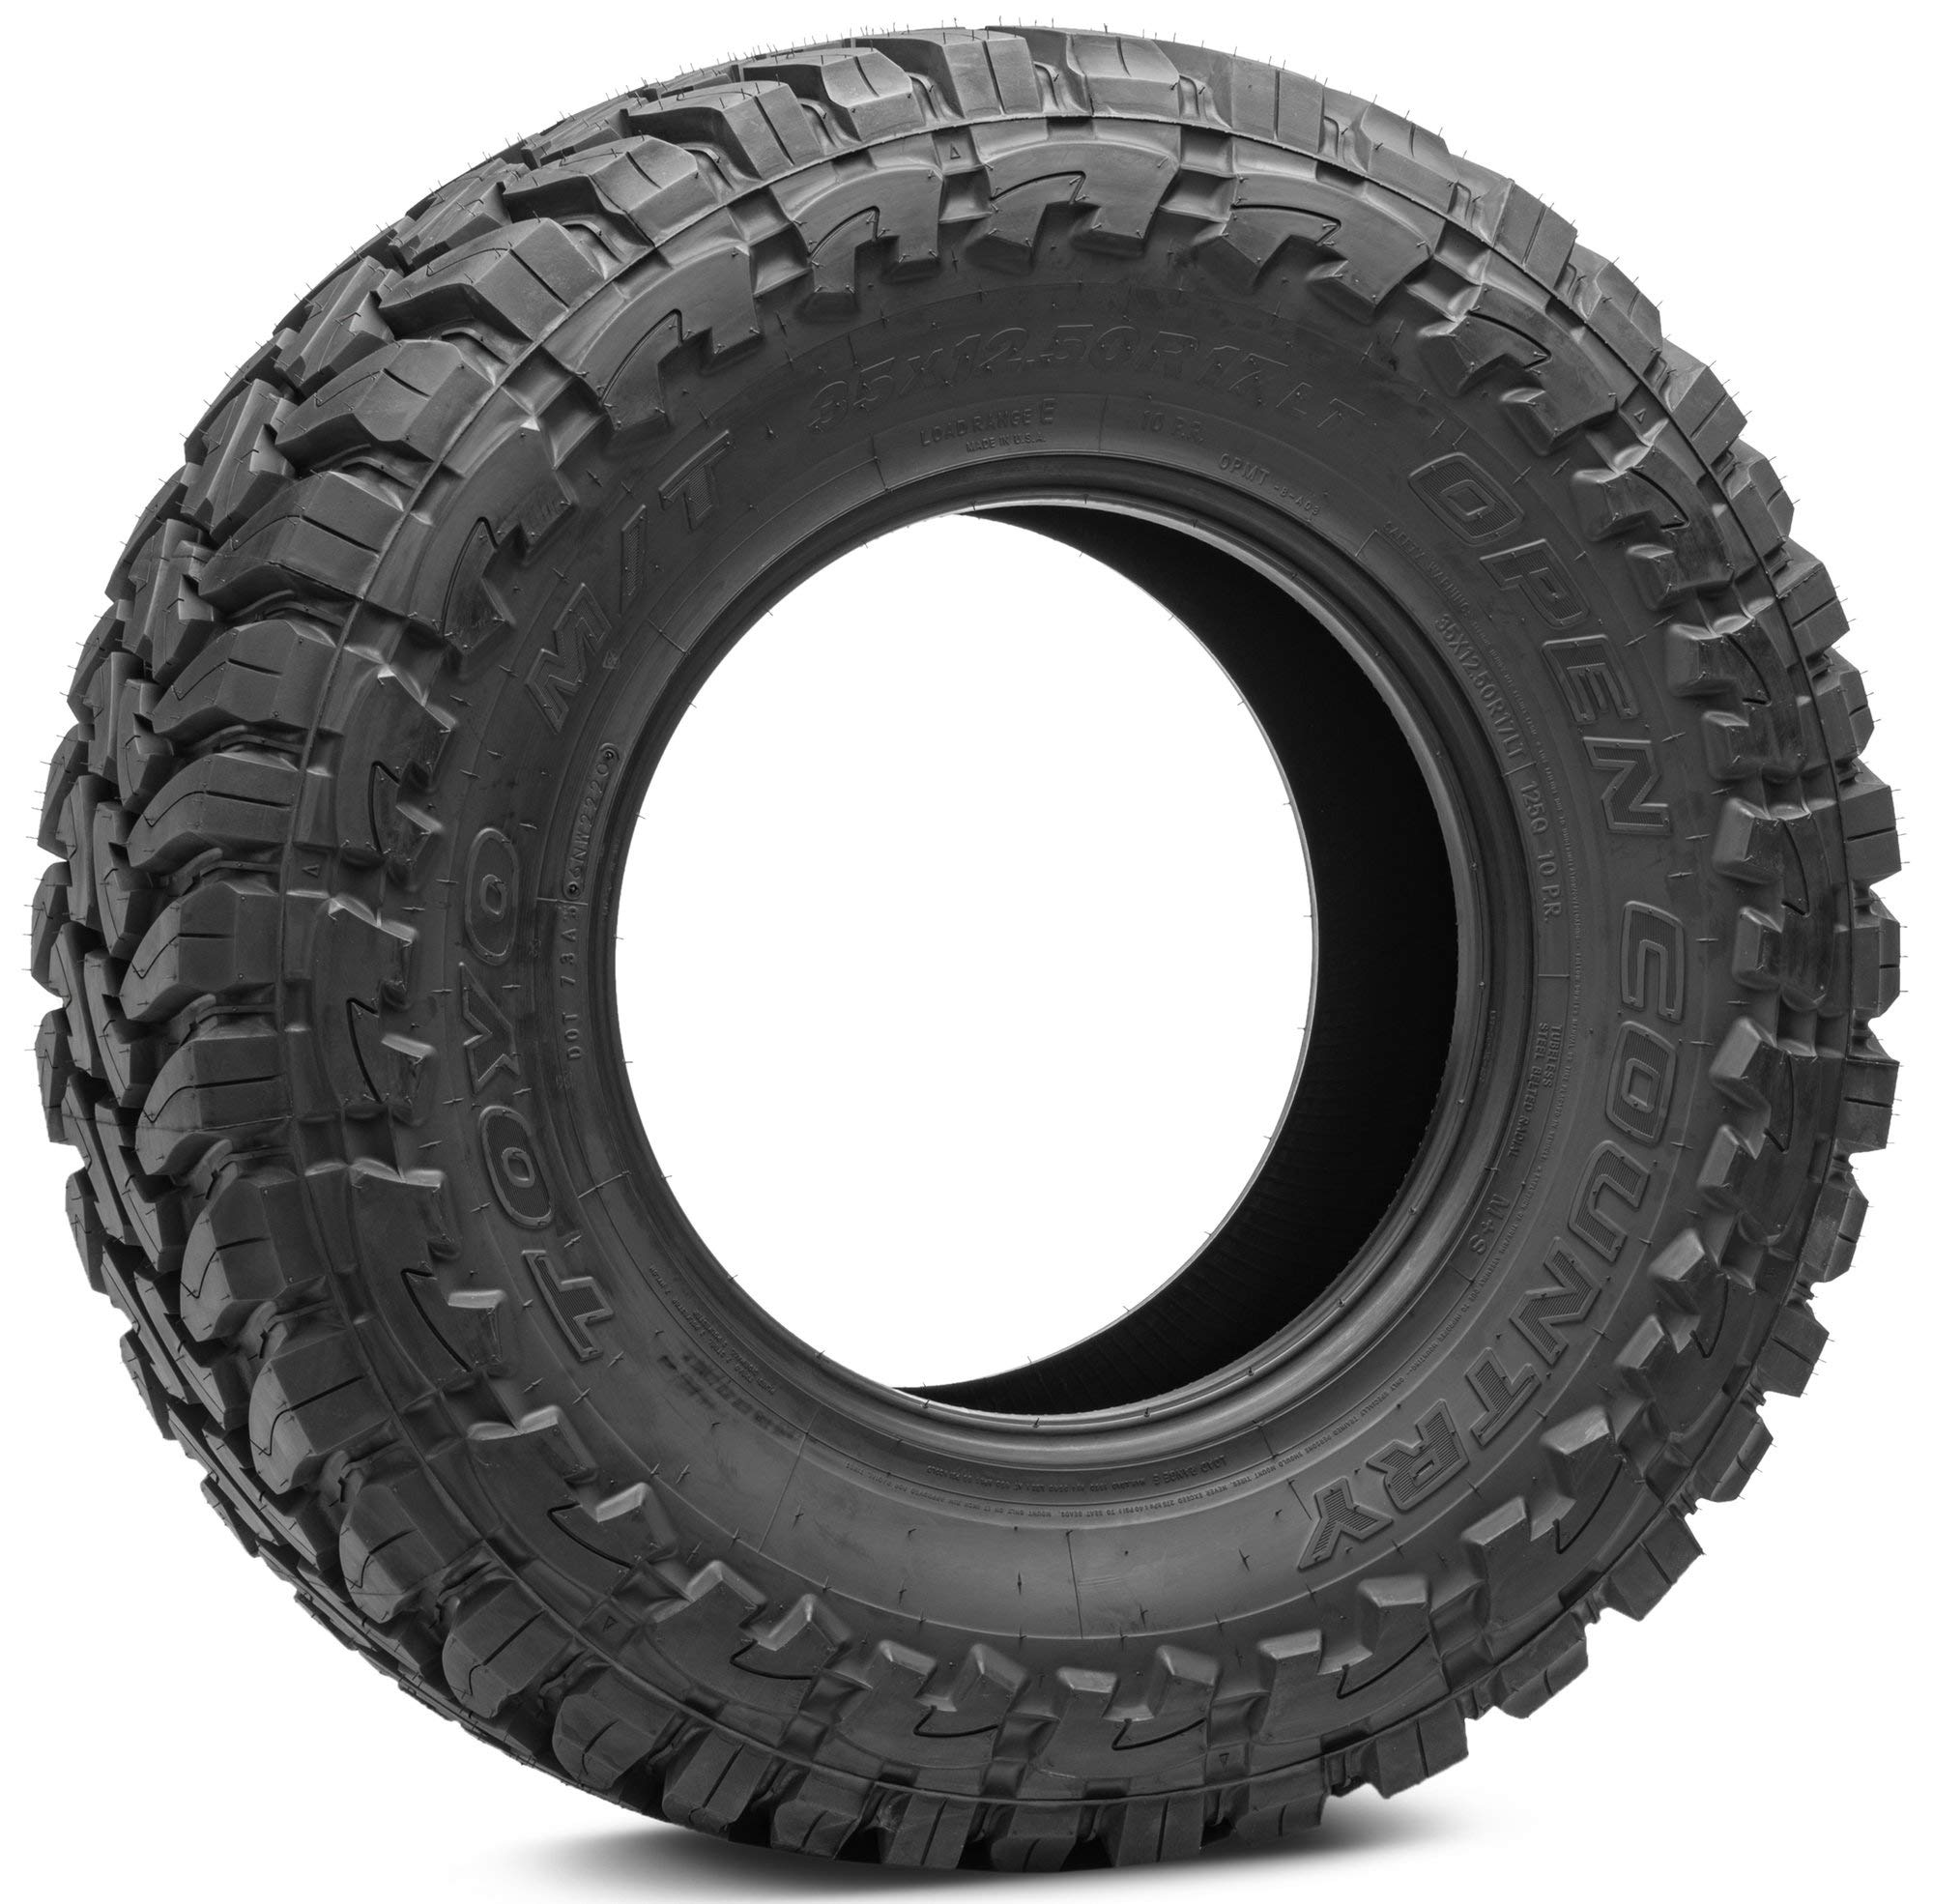 Toyo Open Country M/T Performance Radial Tire-295/55R20 123P